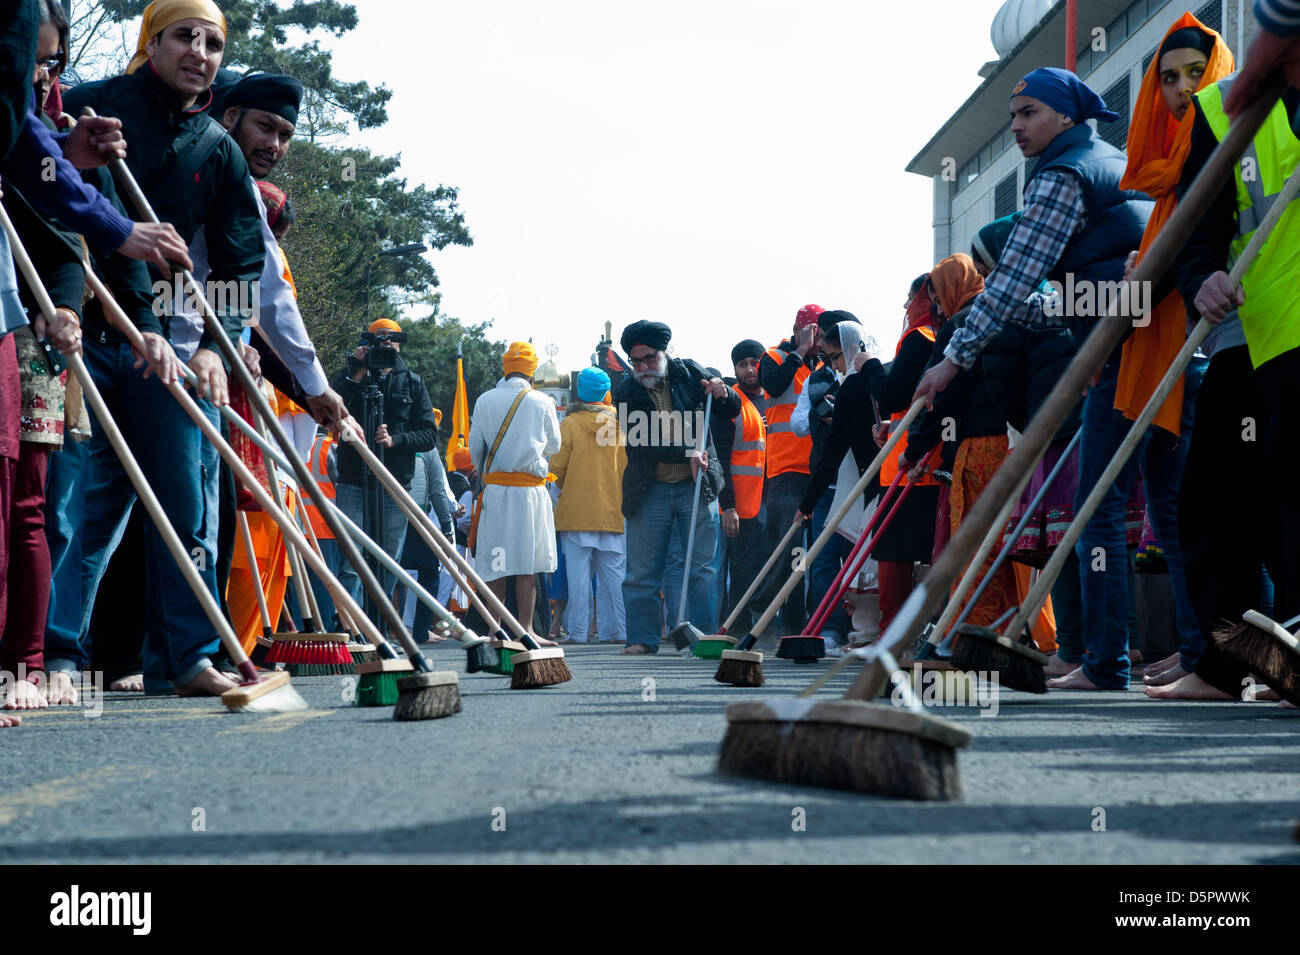 London, UK. 7th April 2013. The road before the procession is cleared by Sewadars during the celebration of Nagar - Stock Image